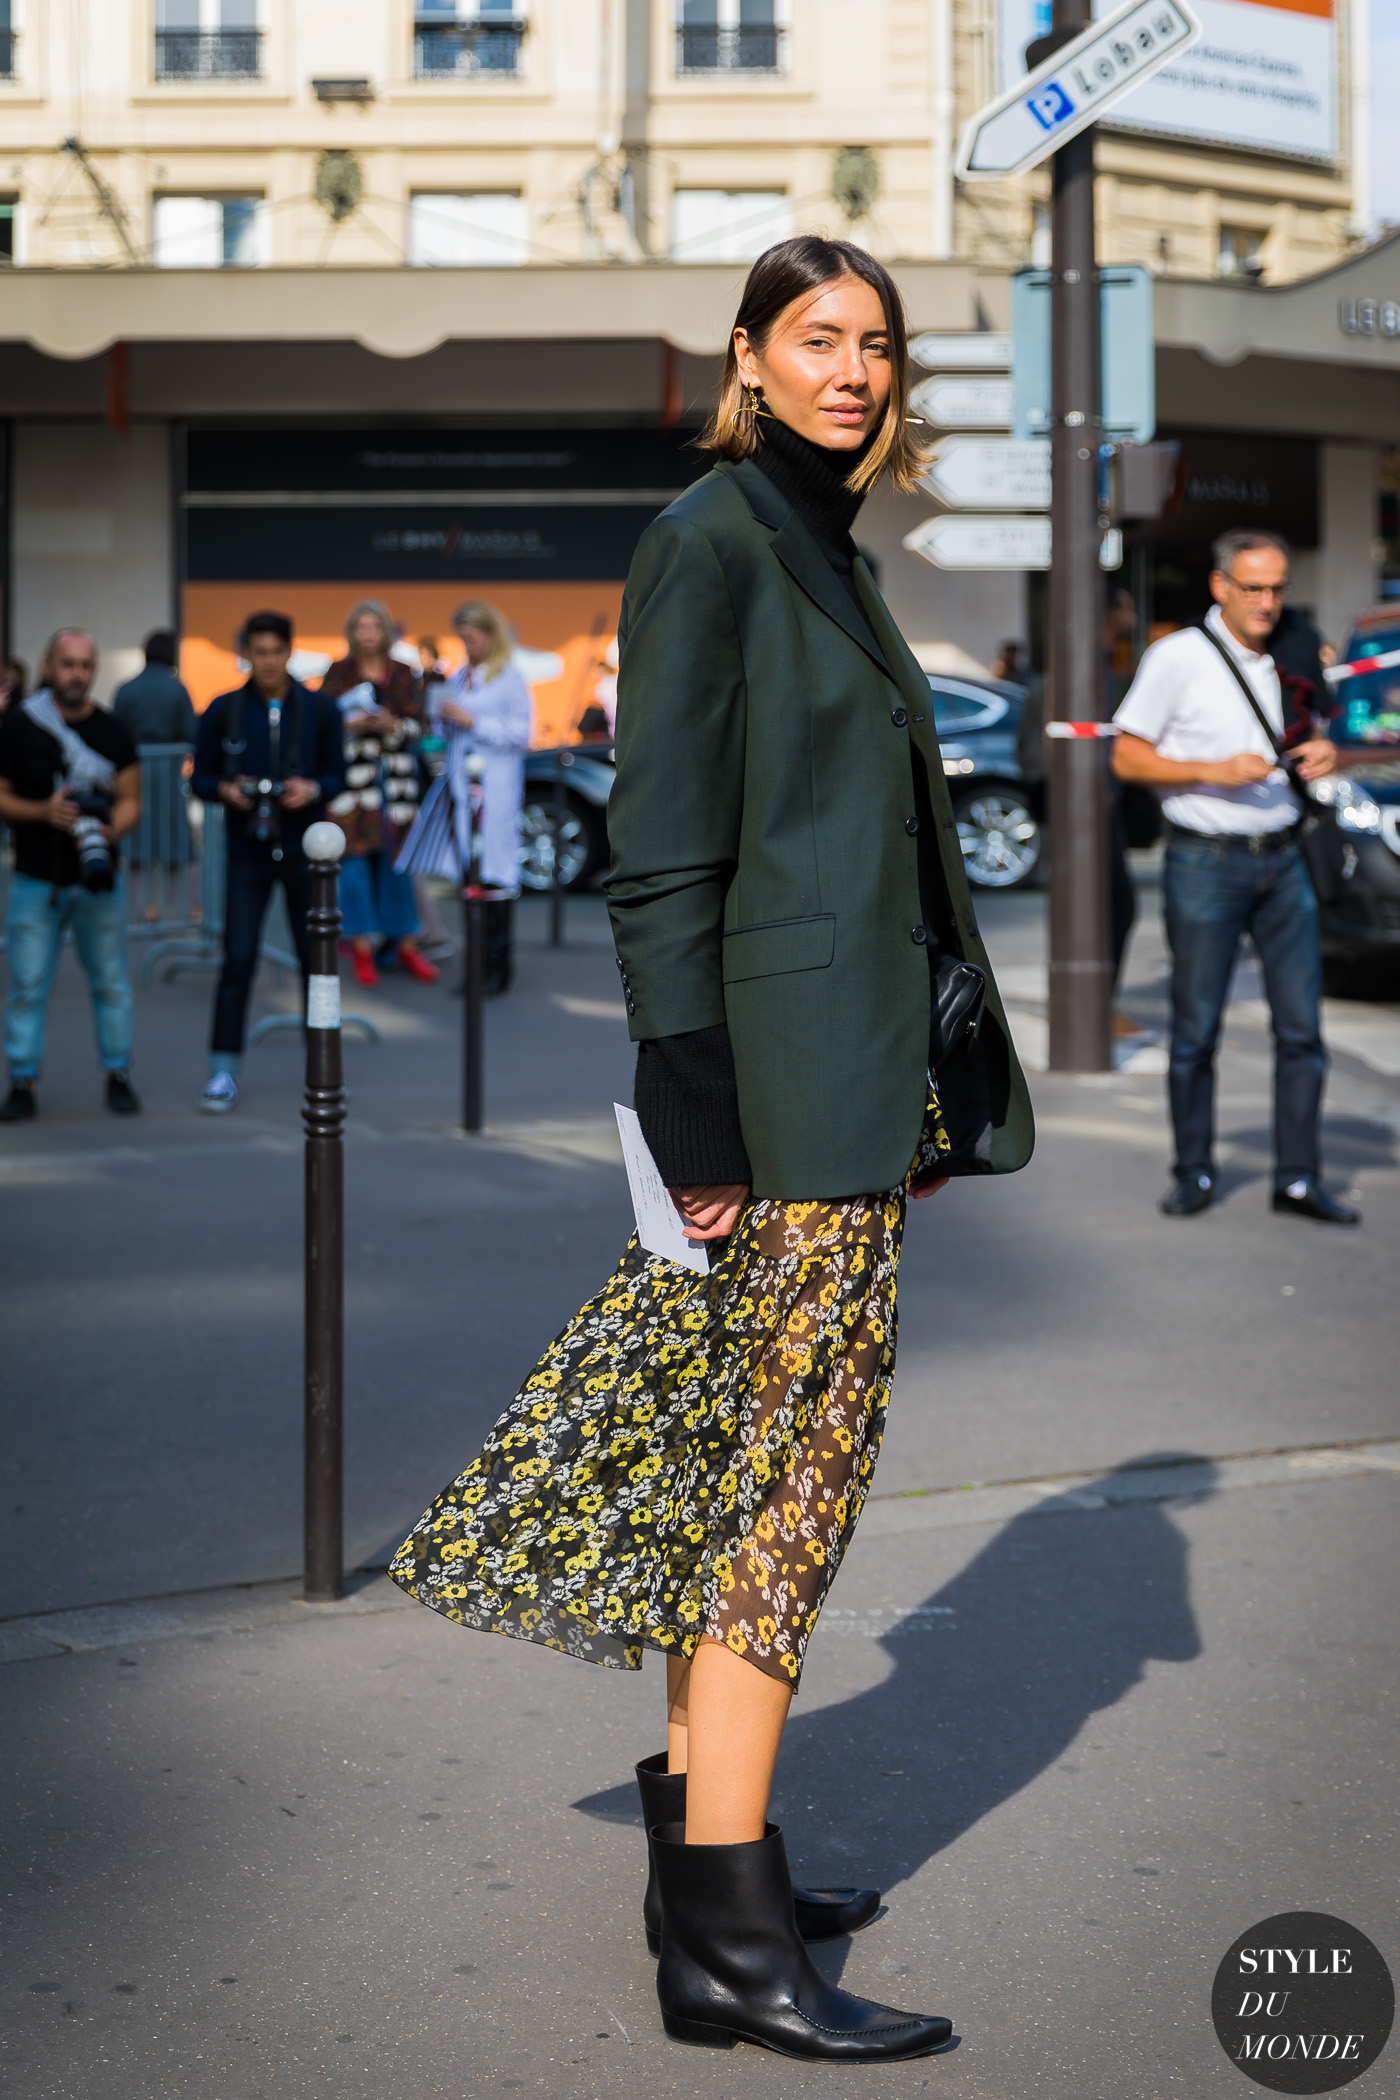 Julie Pelipas by STYLEDUMONDE Street Style Fashion Photography_48A6546